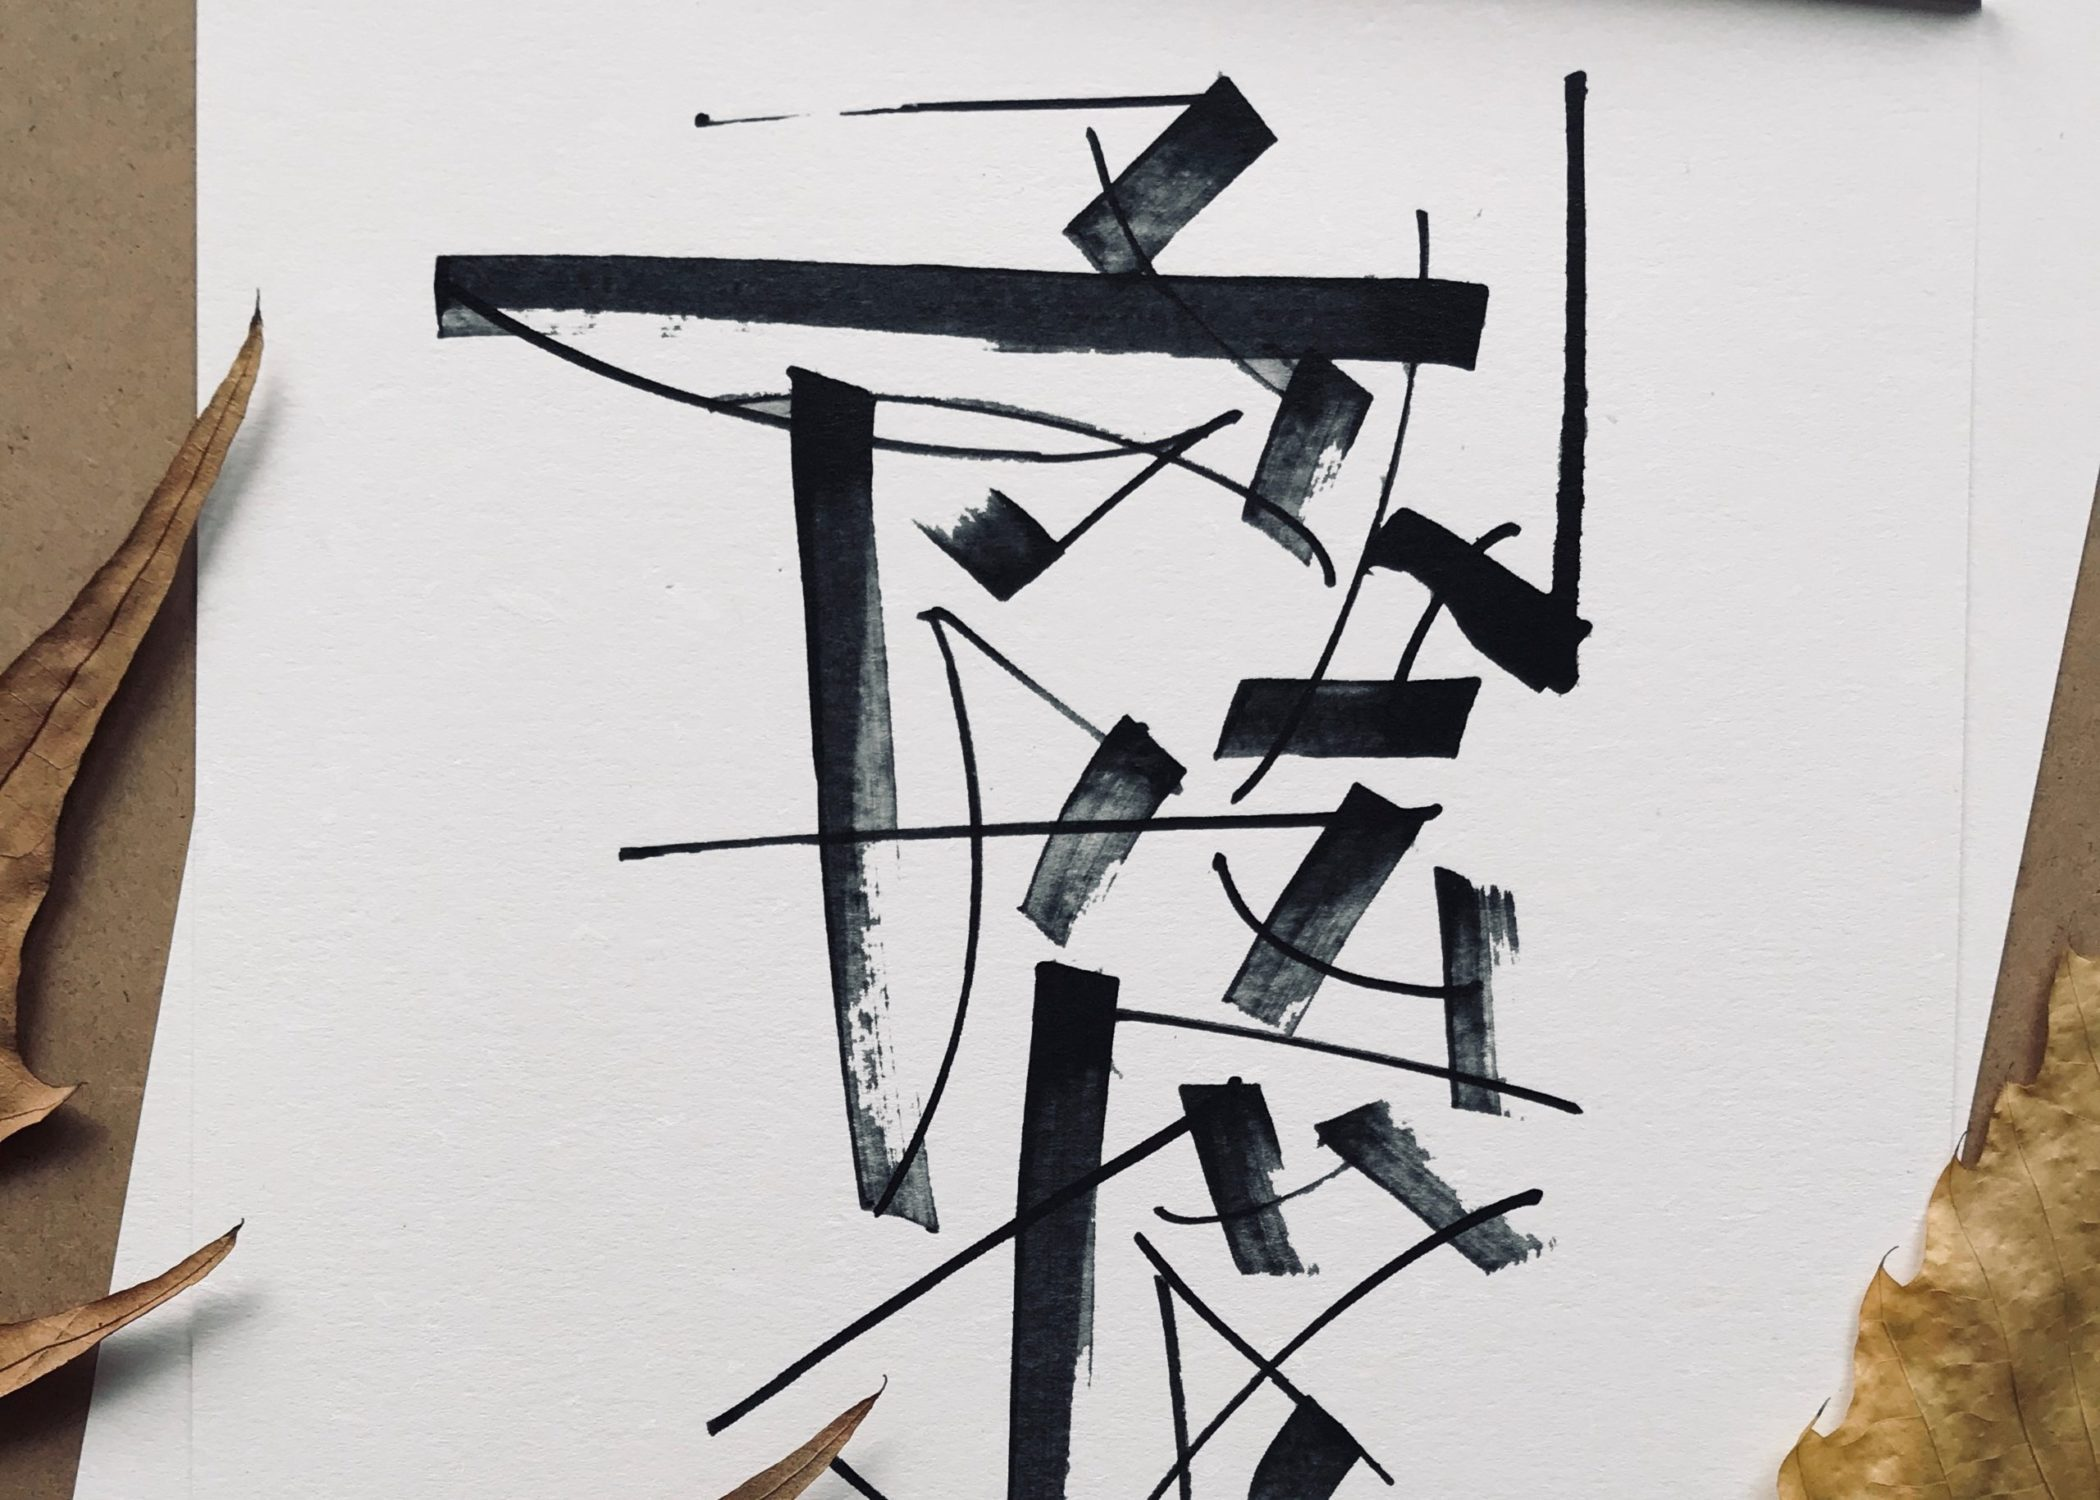 Calligraphy with balsa wood